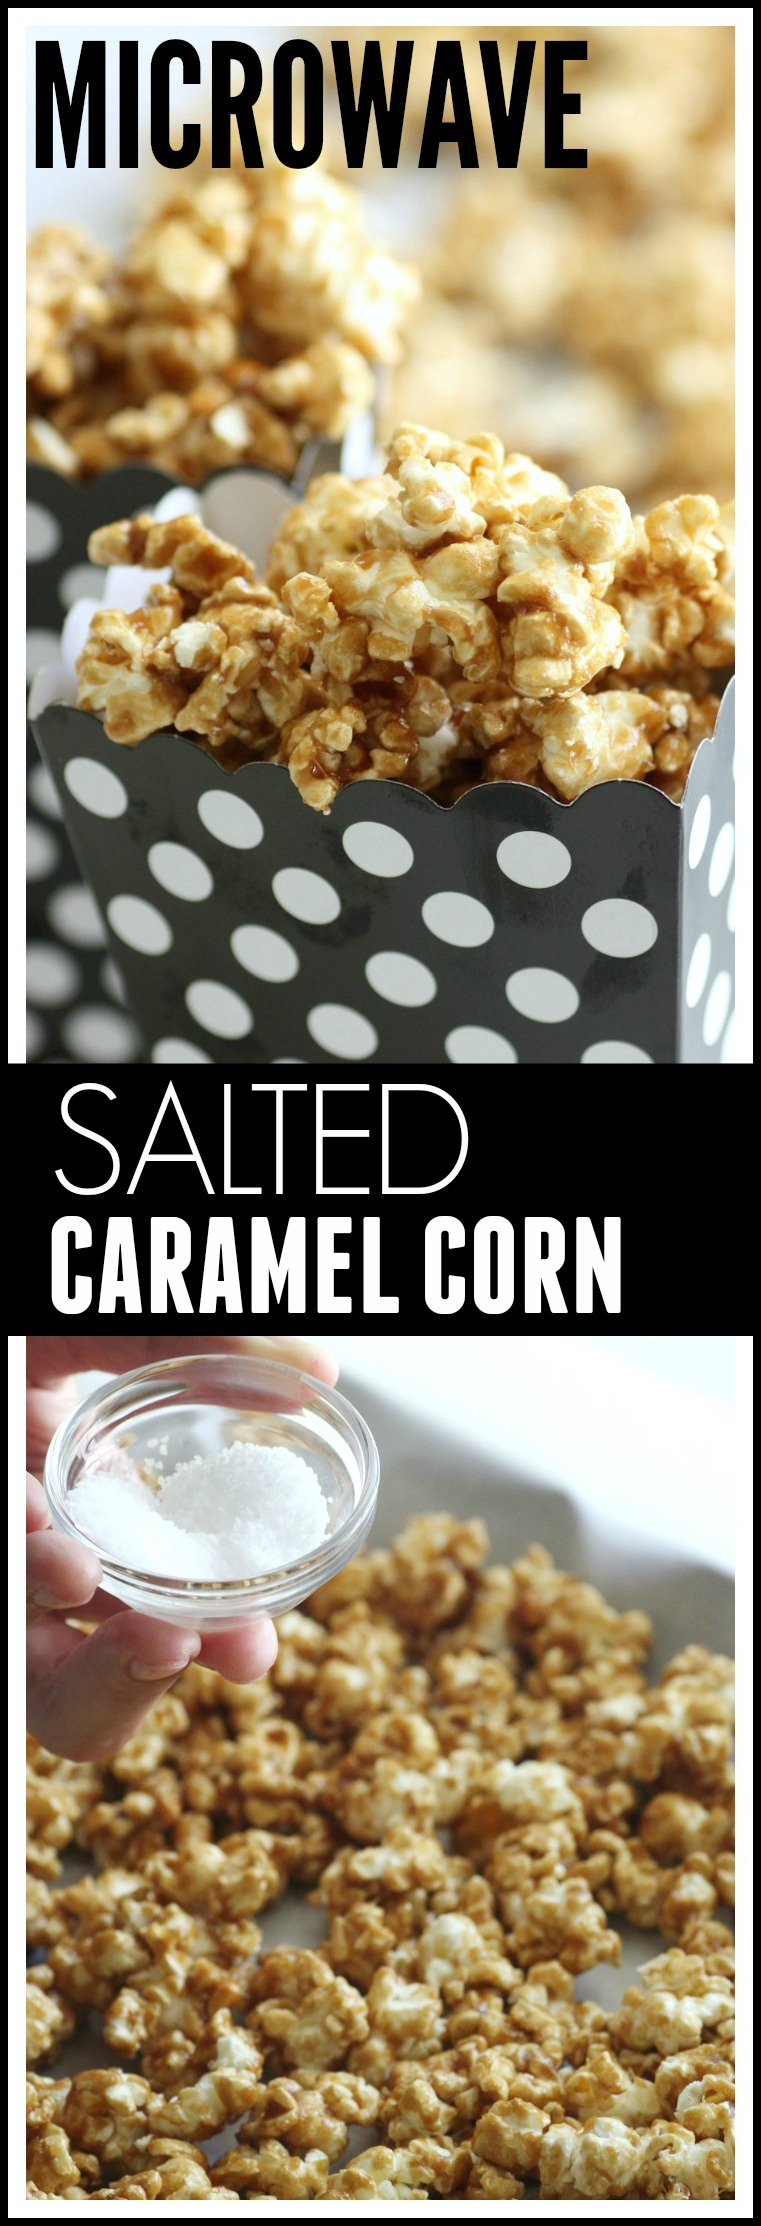 Easy Microwave Caramel Corn Recipe | CatchMyParty.com